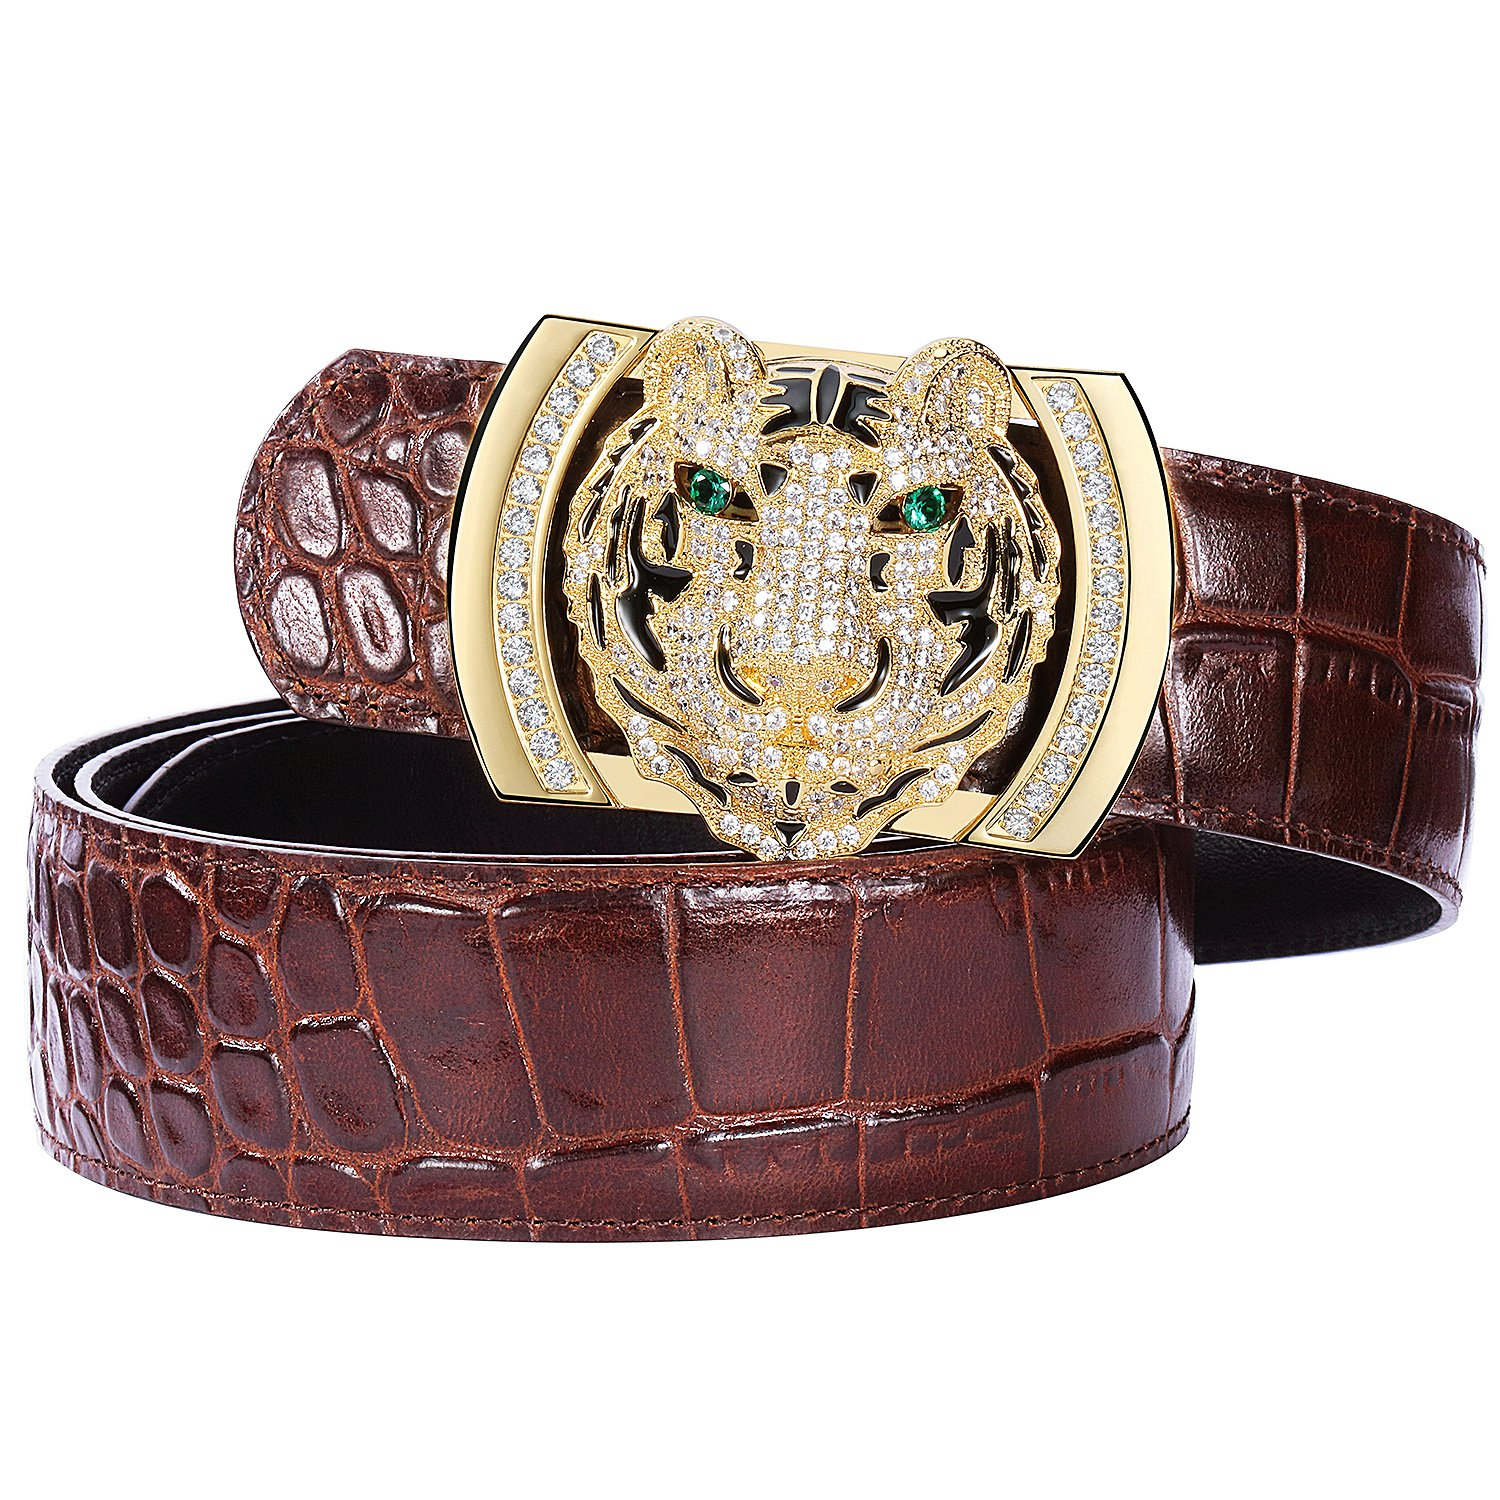 Men's Belts Luxury Genuine Leather Brown Dress Belt for Men Alligator Pattern Tiger Plaque Buckle